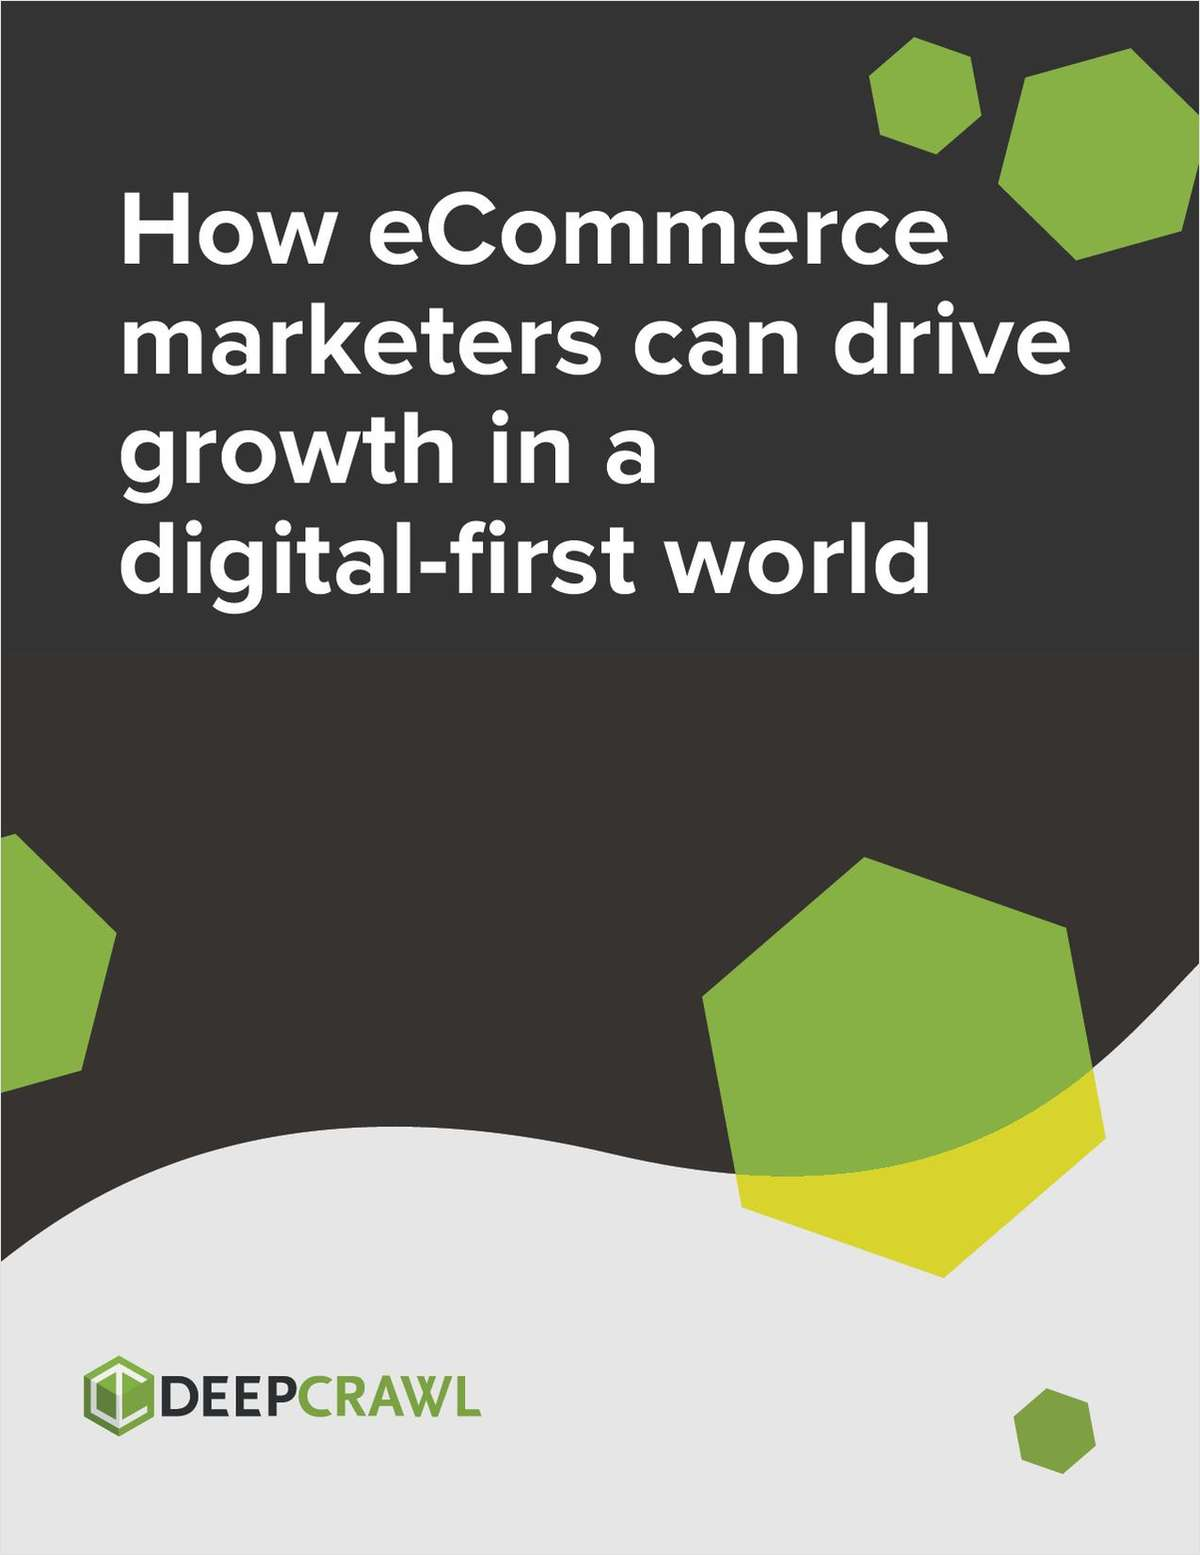 New Whitepaper: How eCommerce Marketers Can Drive Growth in a Digital-First World